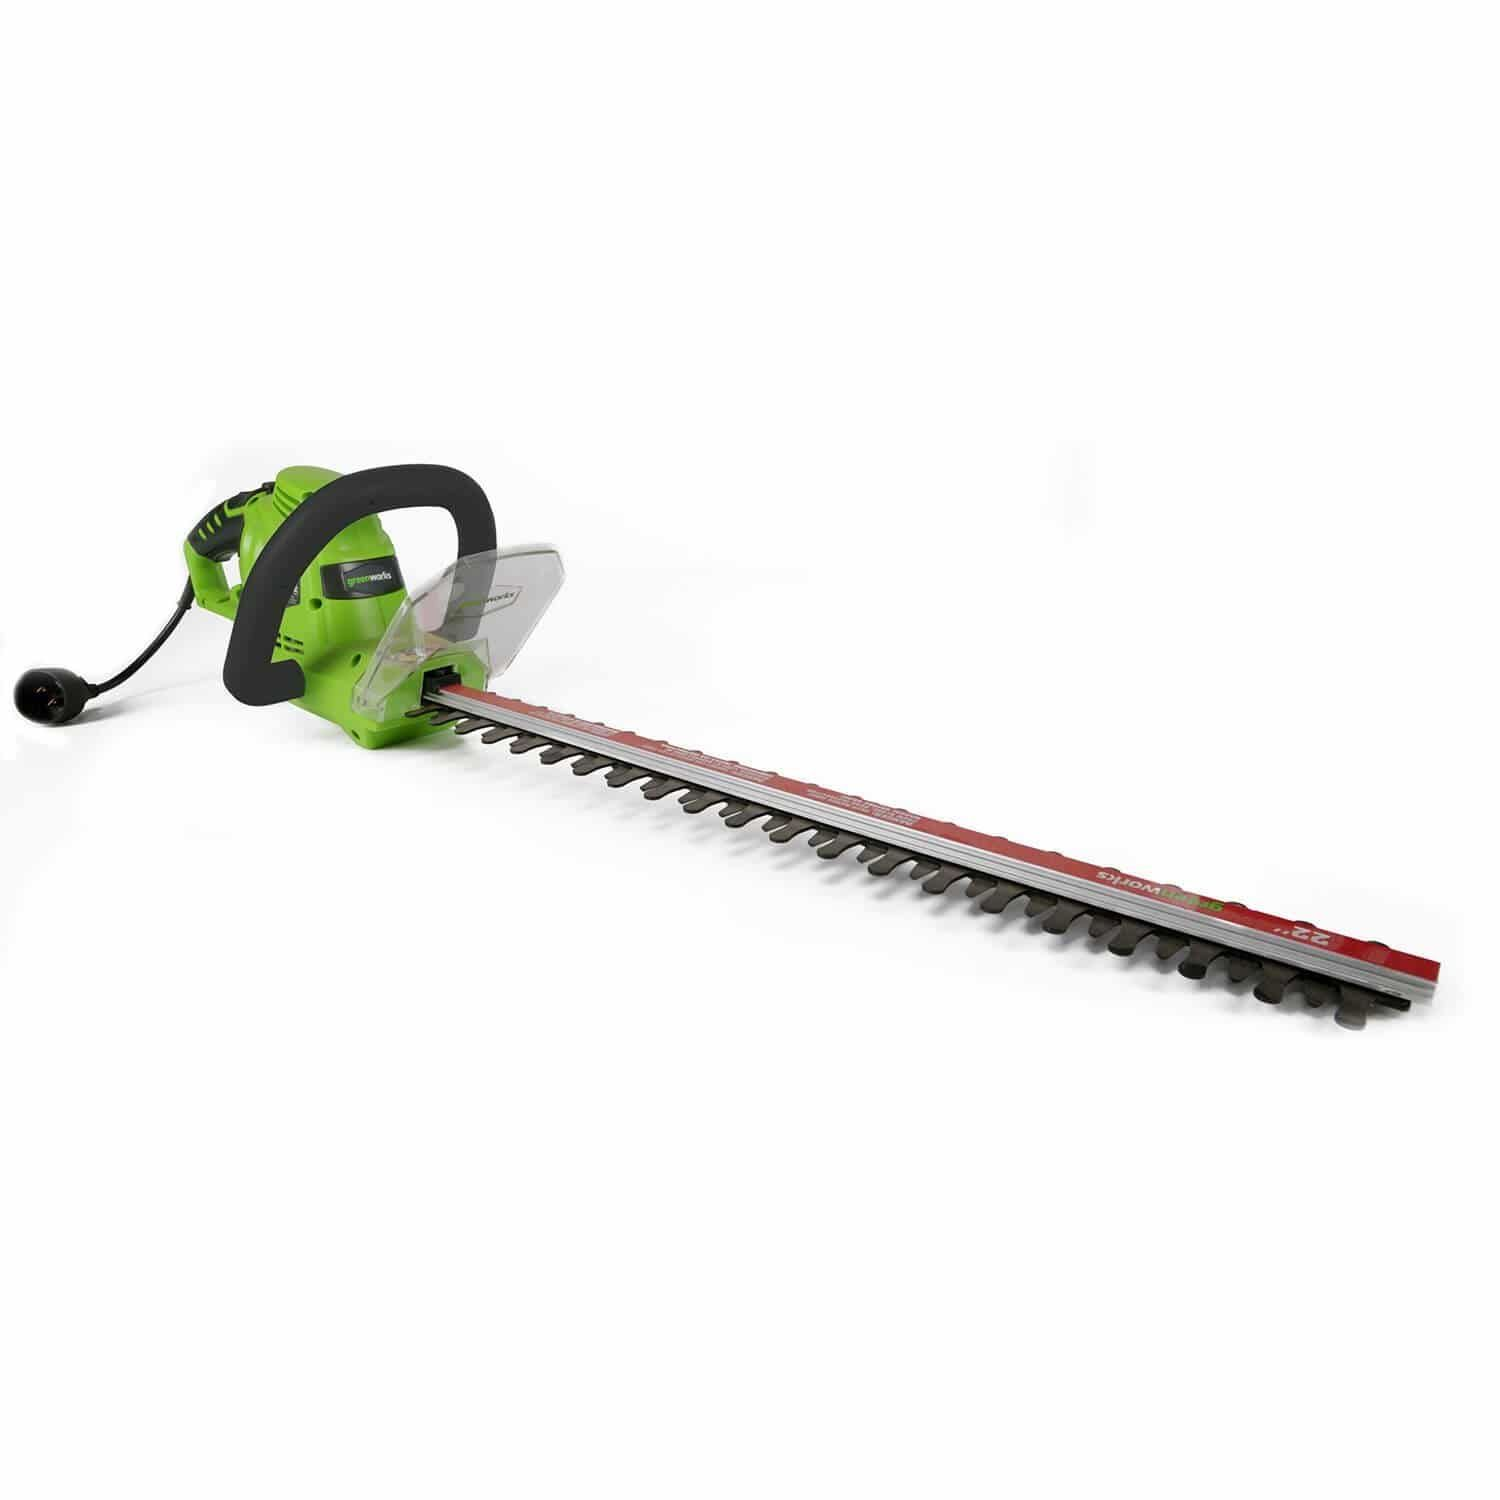 Top 10 Best Electric Hedge Trimmers In 2020 Review With Purchasing Guide Hqreview Hedge Trimmers Hedges Trimmers